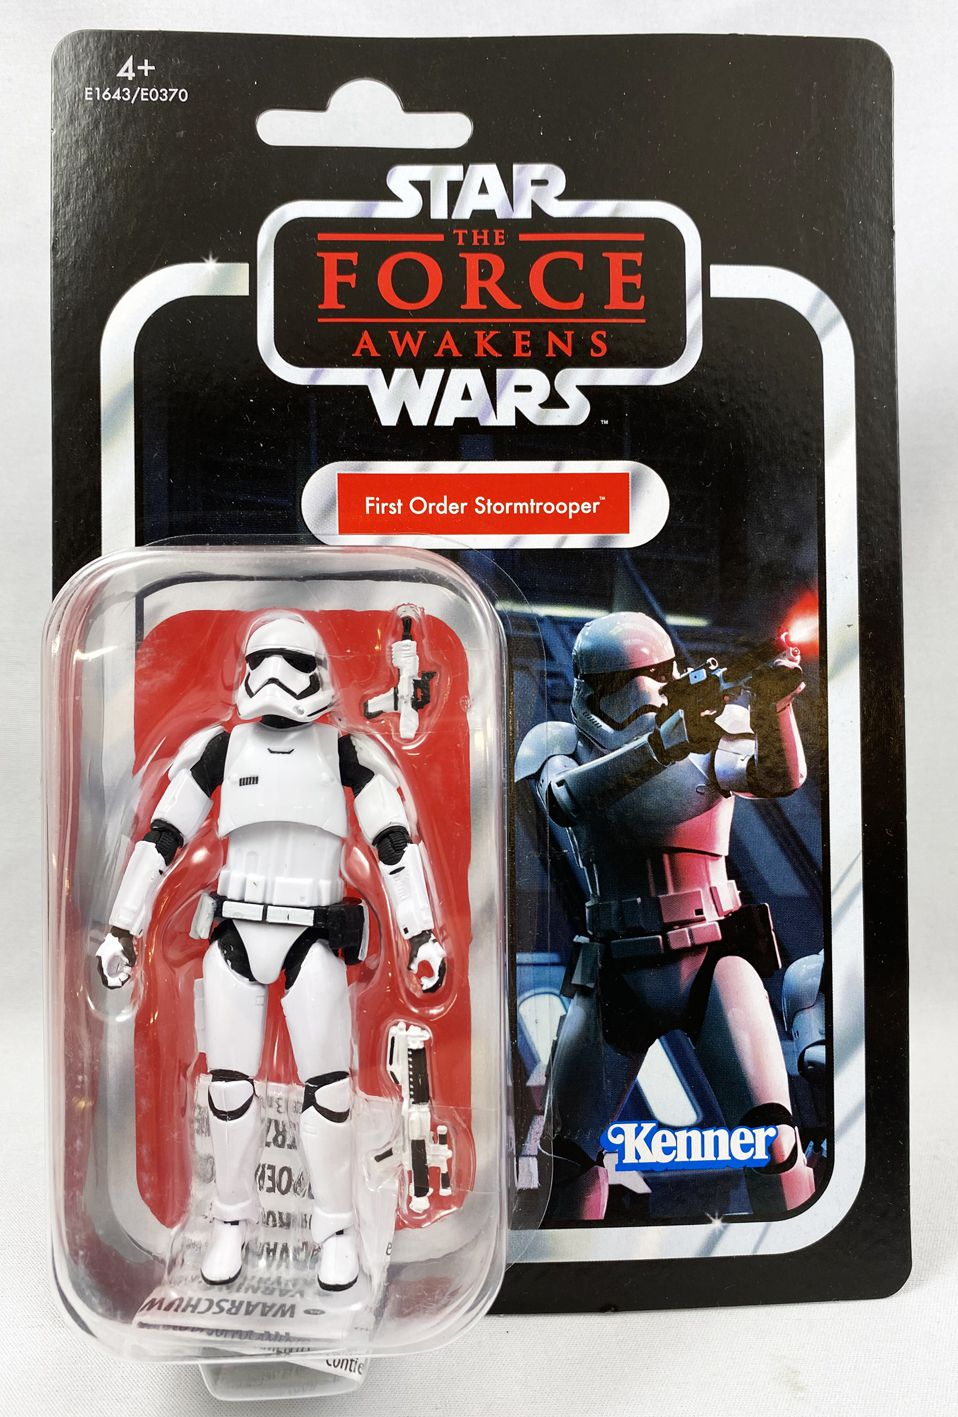 Star Wars (The Vintage Collection) - Hasbro - First Order Stormtrooper - The Force Awakens